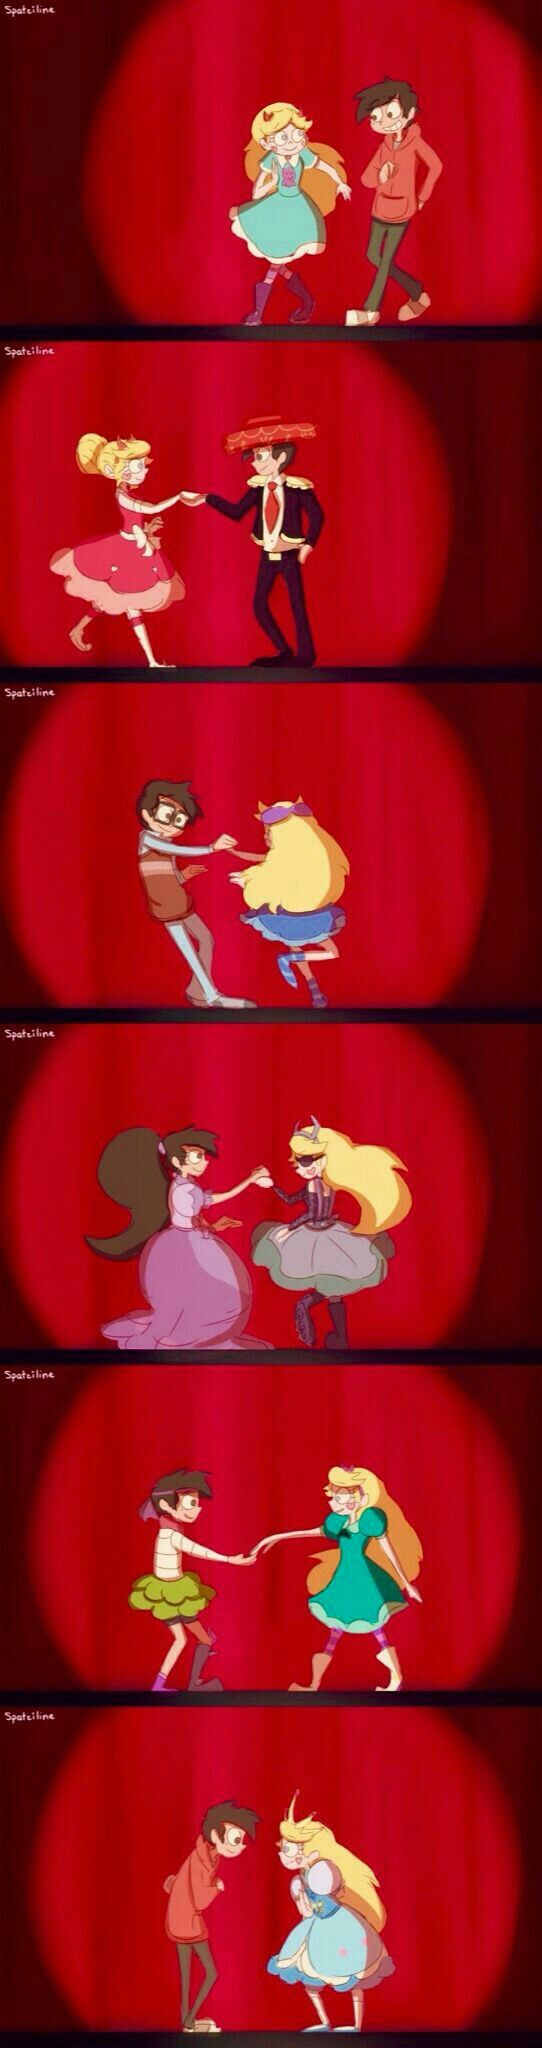 Starco costume changes